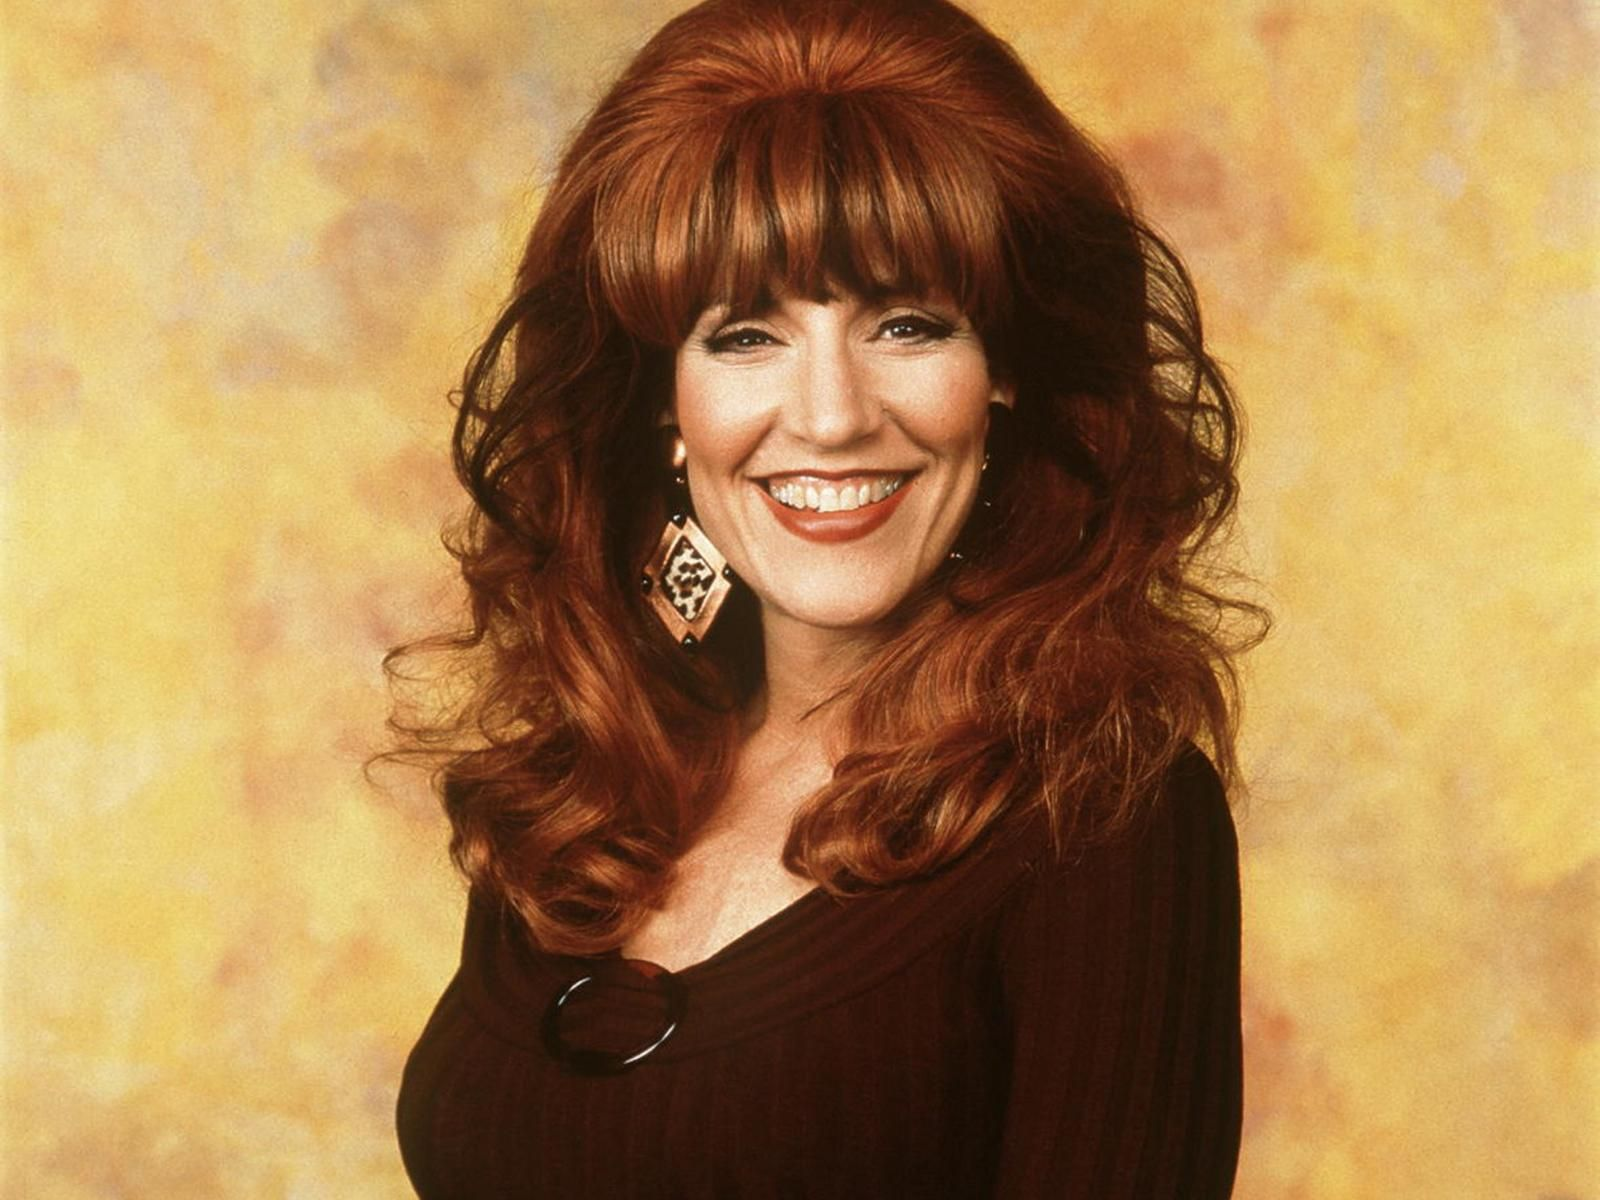 Katey Sagal Wallpaper Katey Sagal Katey Sagal Tv Moms Married With Children